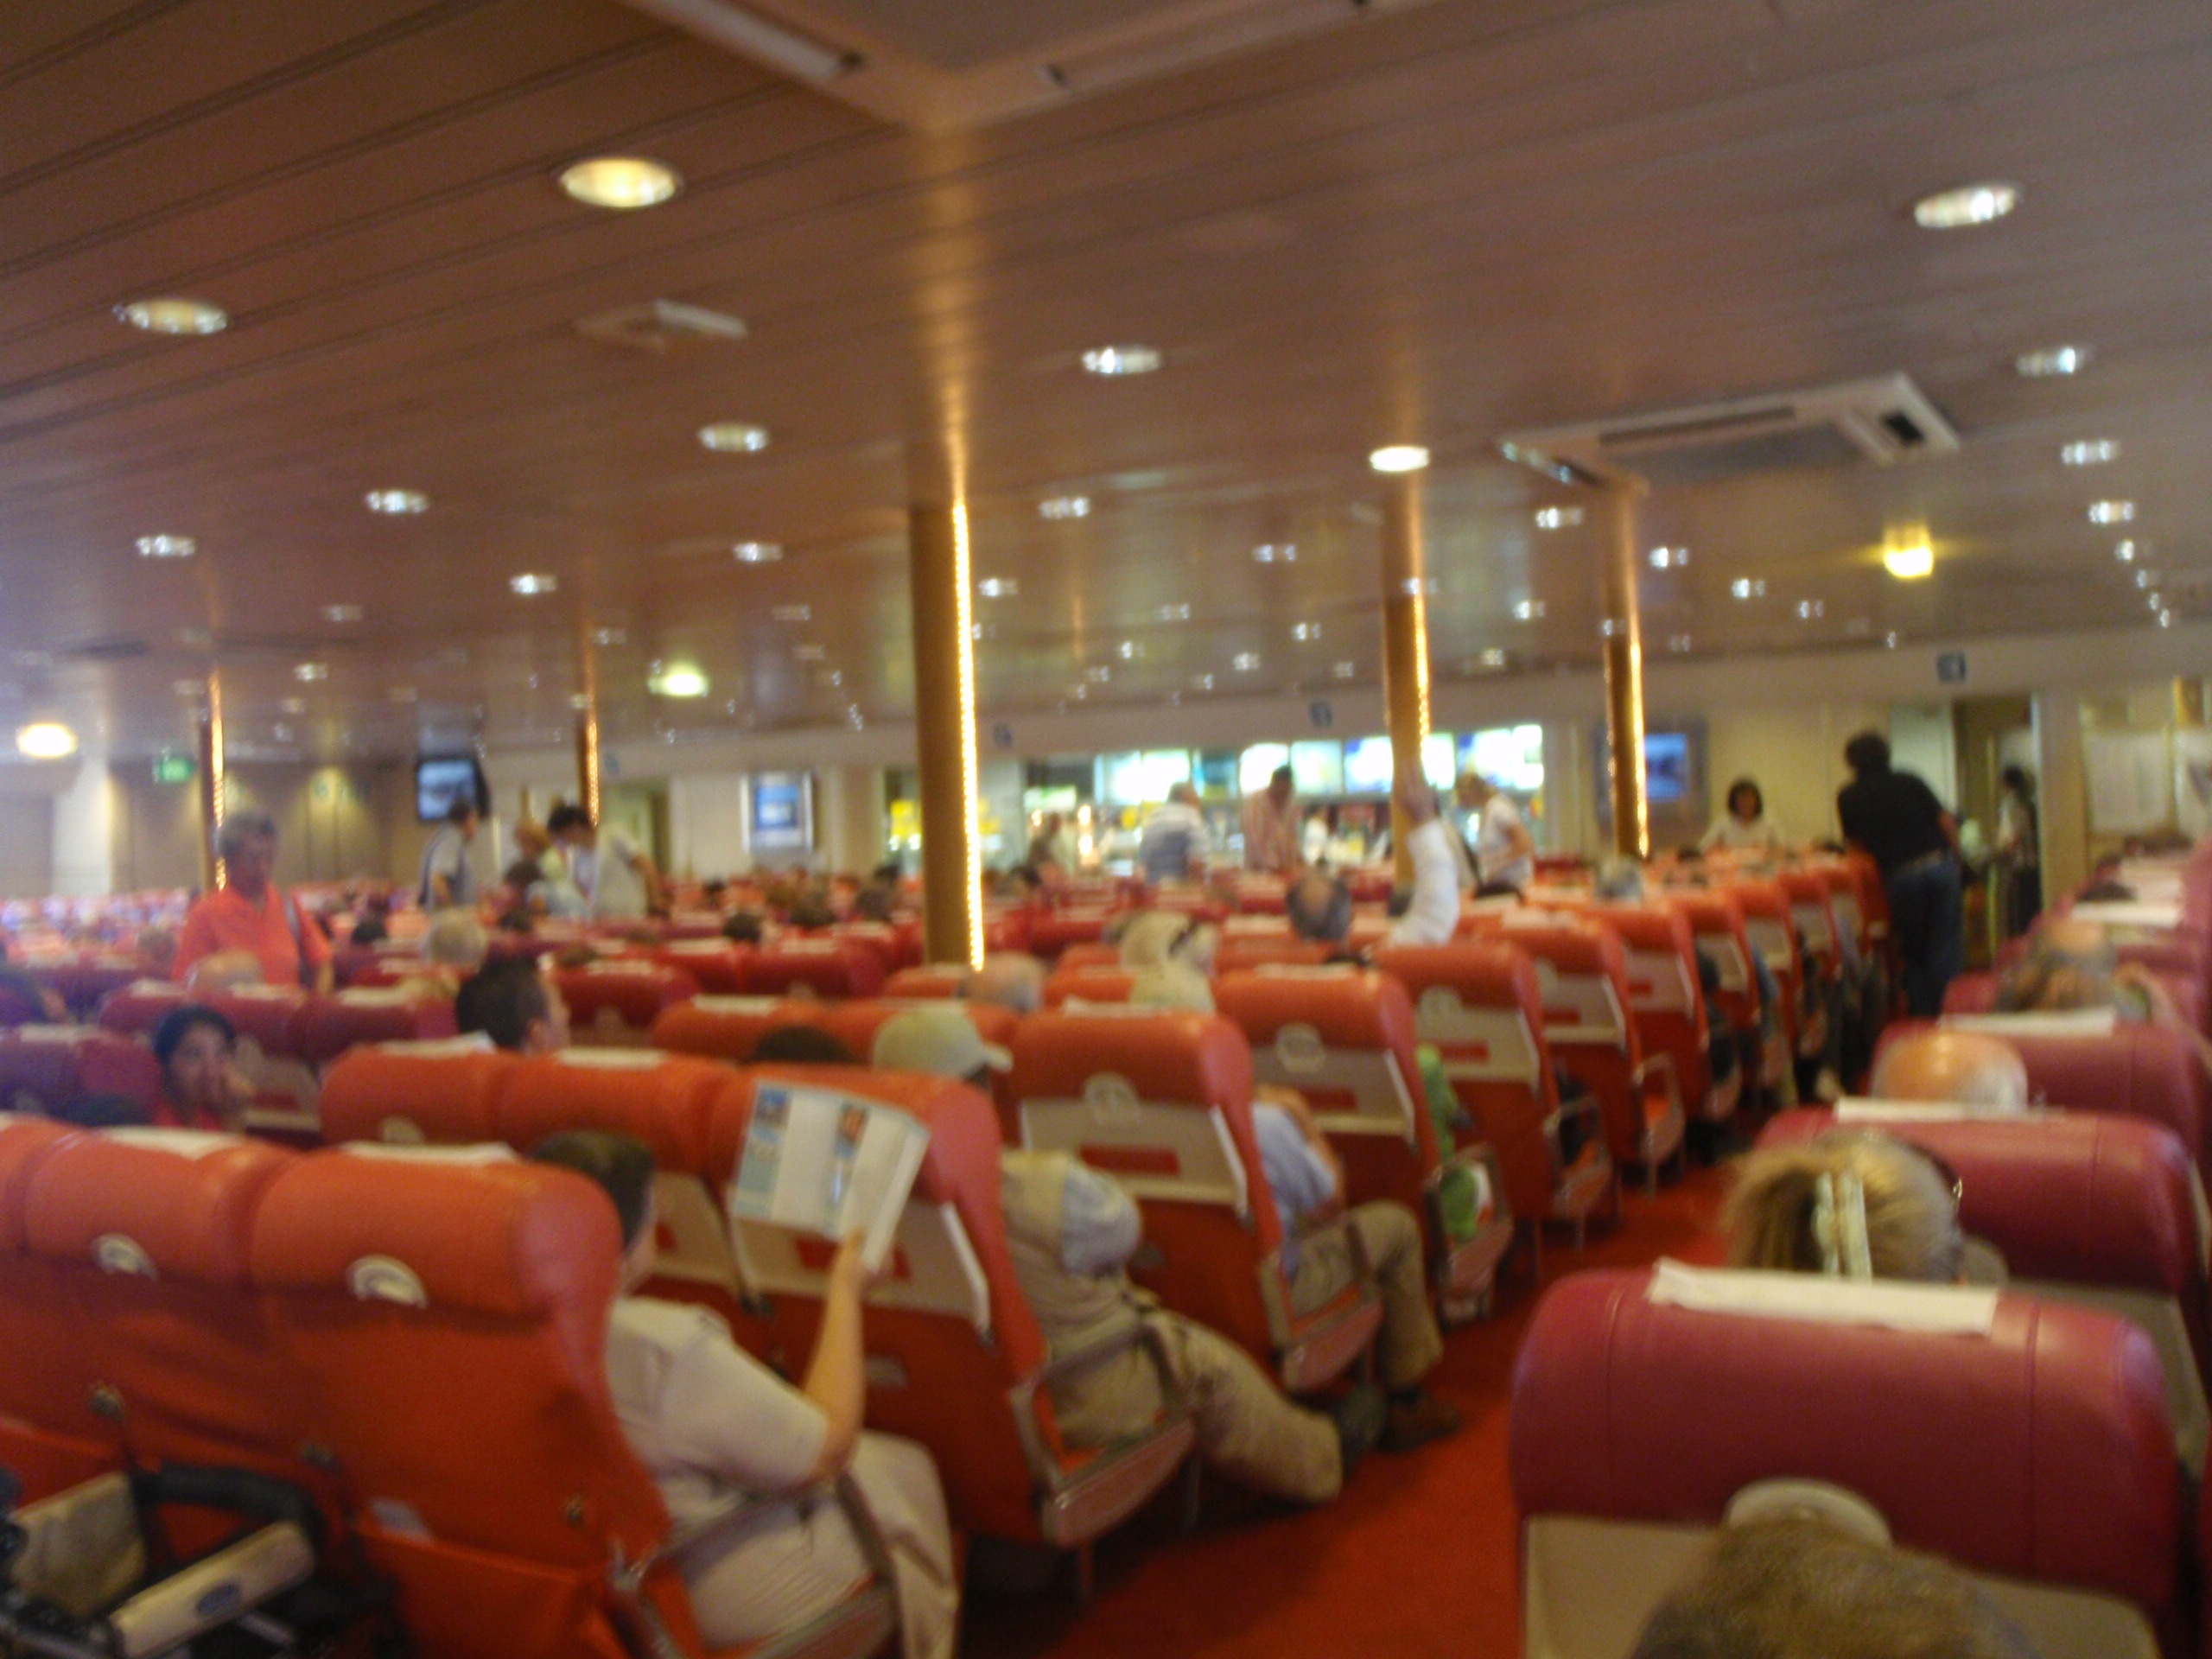 Aboard the ferry on the Rio Plato - from Buenos Aires, Argentina to Colonia, Uruguay